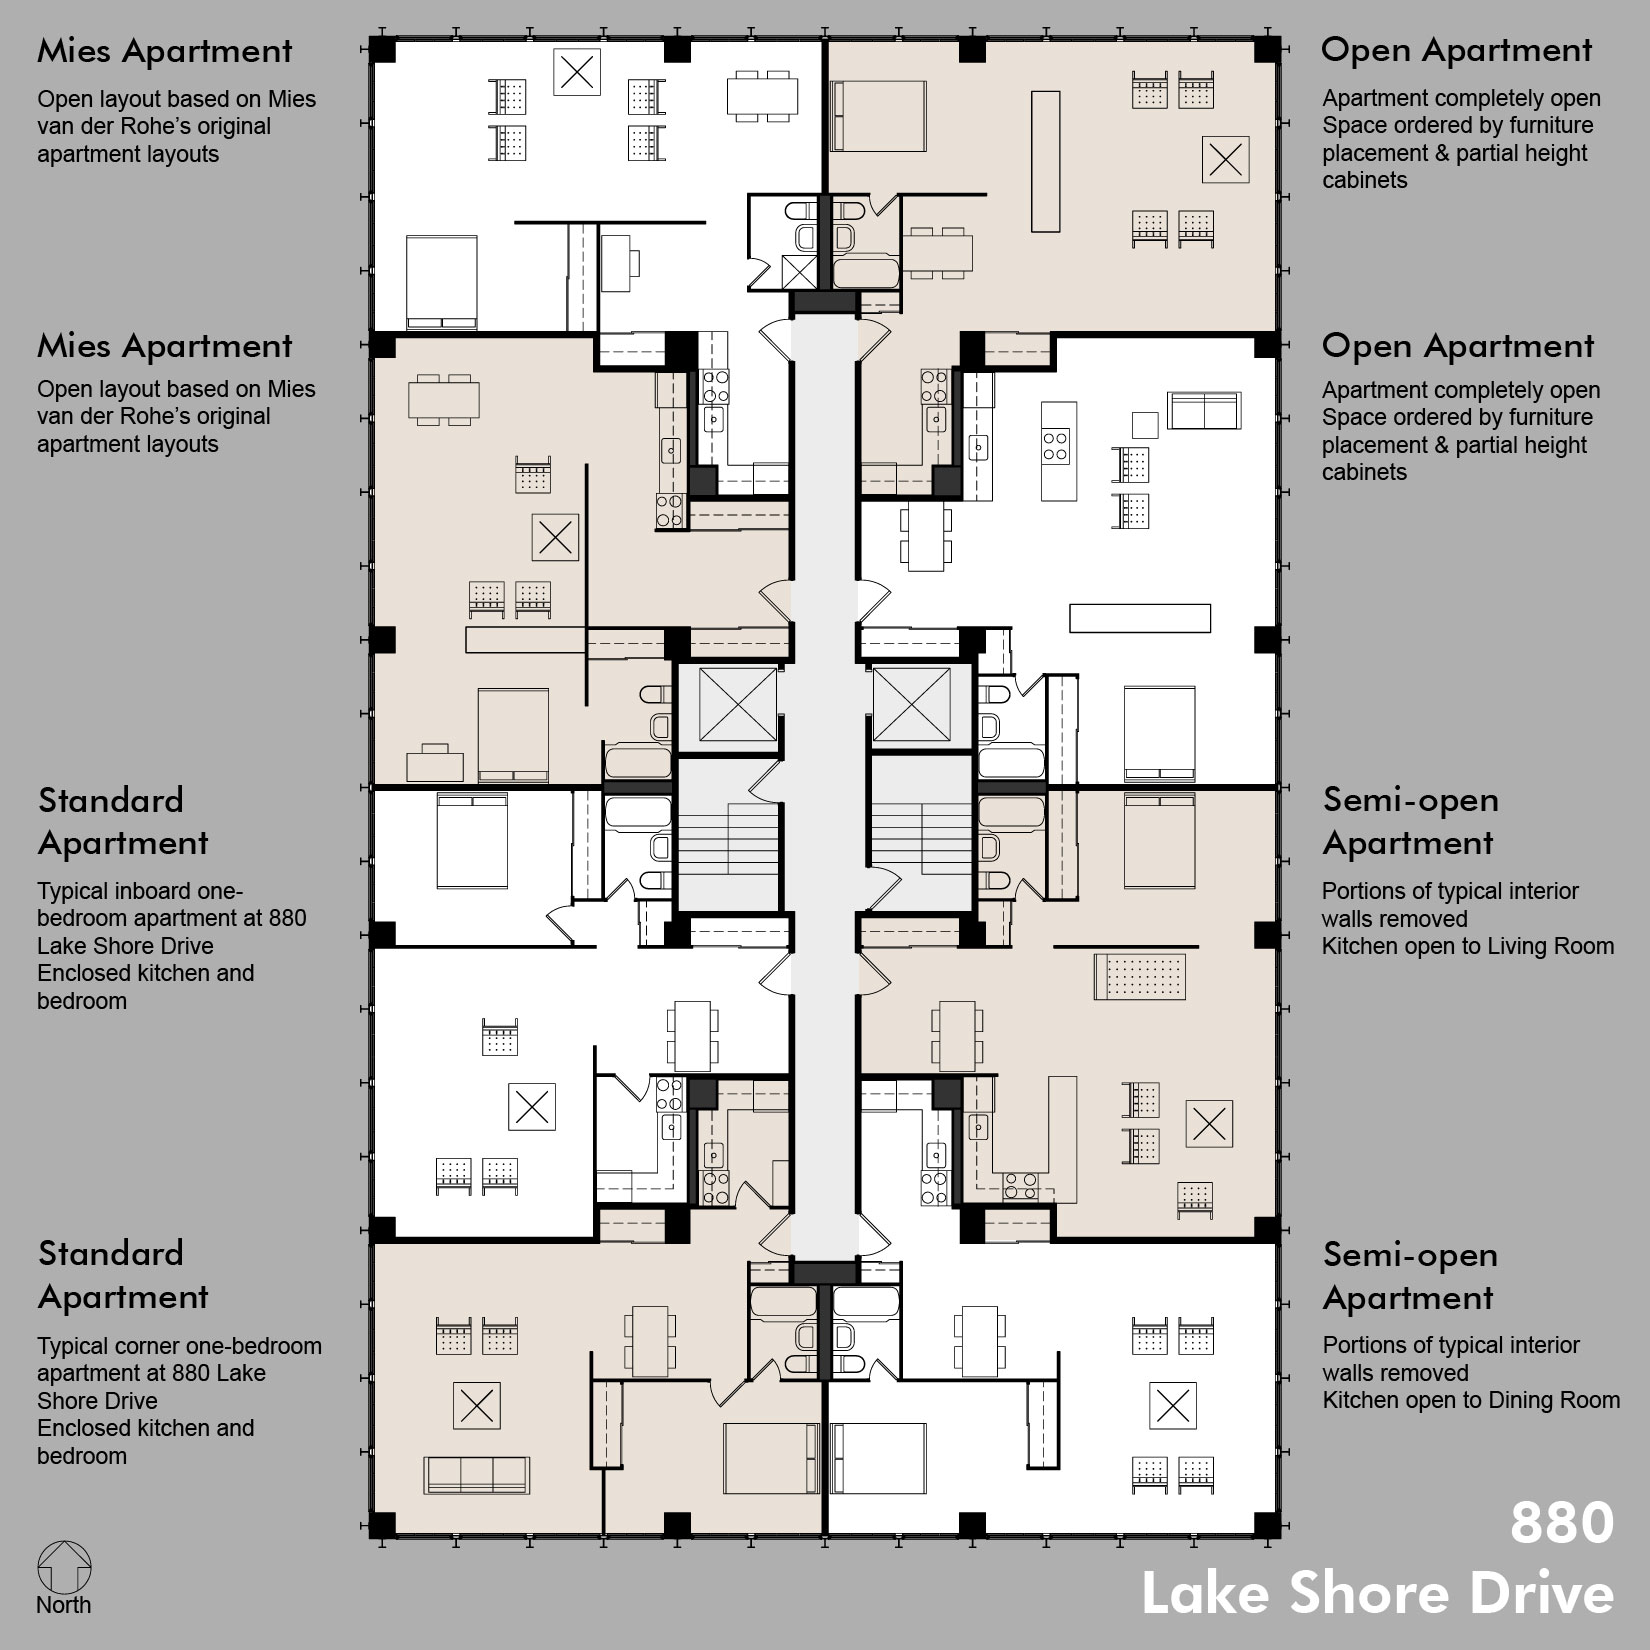 880 floor plans including standard apt Apartment design floor plan